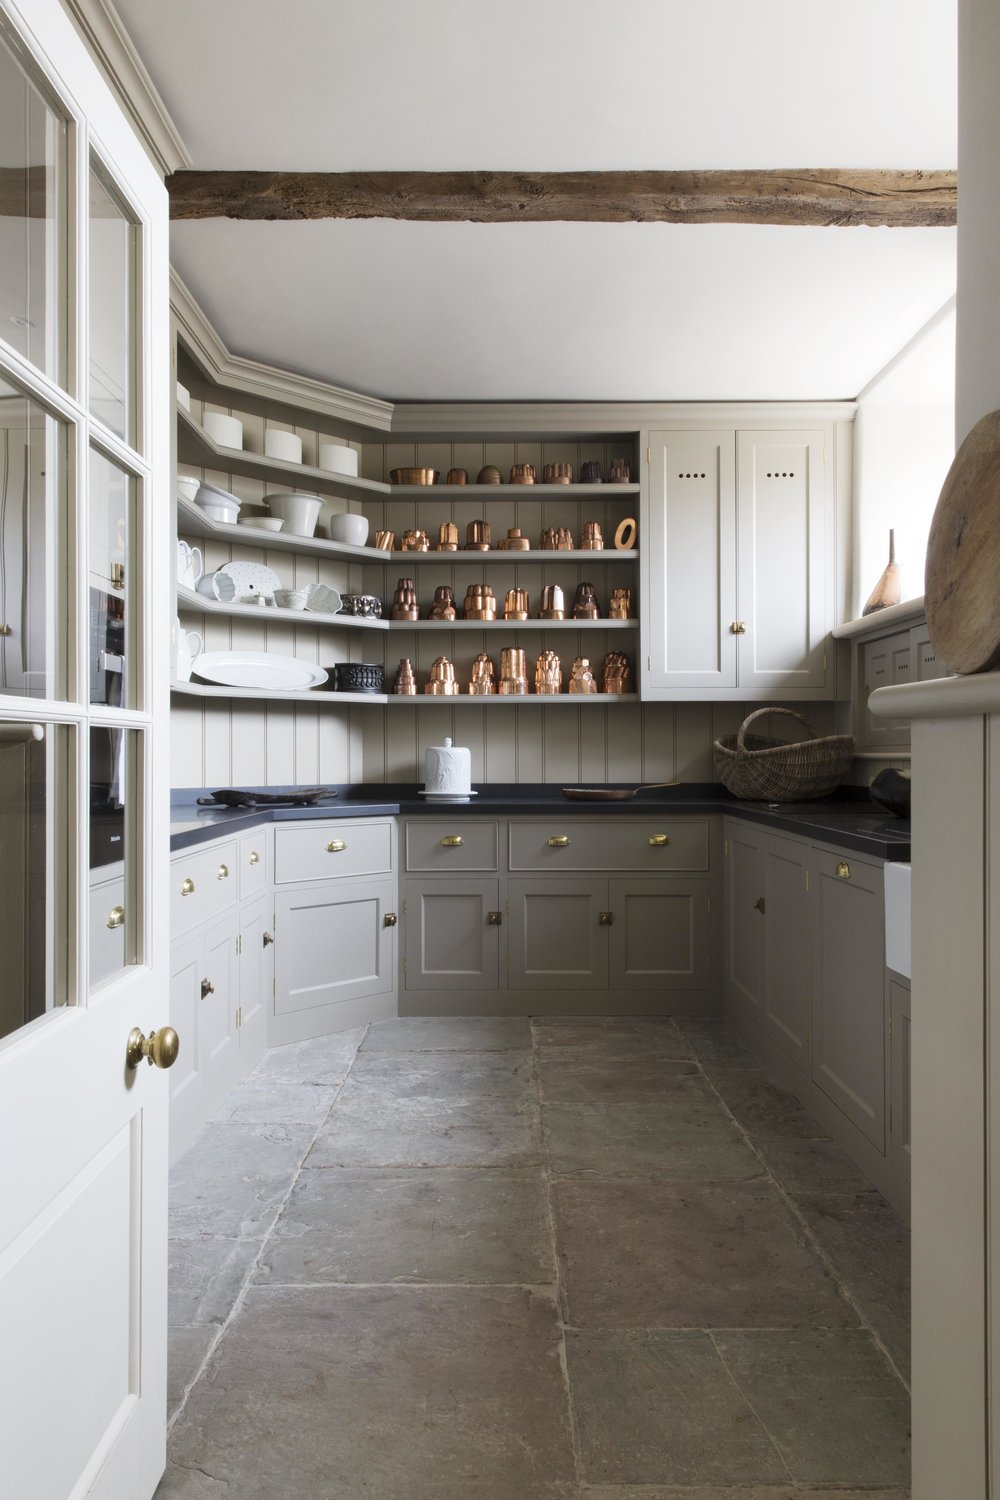 The muted colours of the cabinetry and york stone floor are great foils for the impressive collection of copper jelly moulds